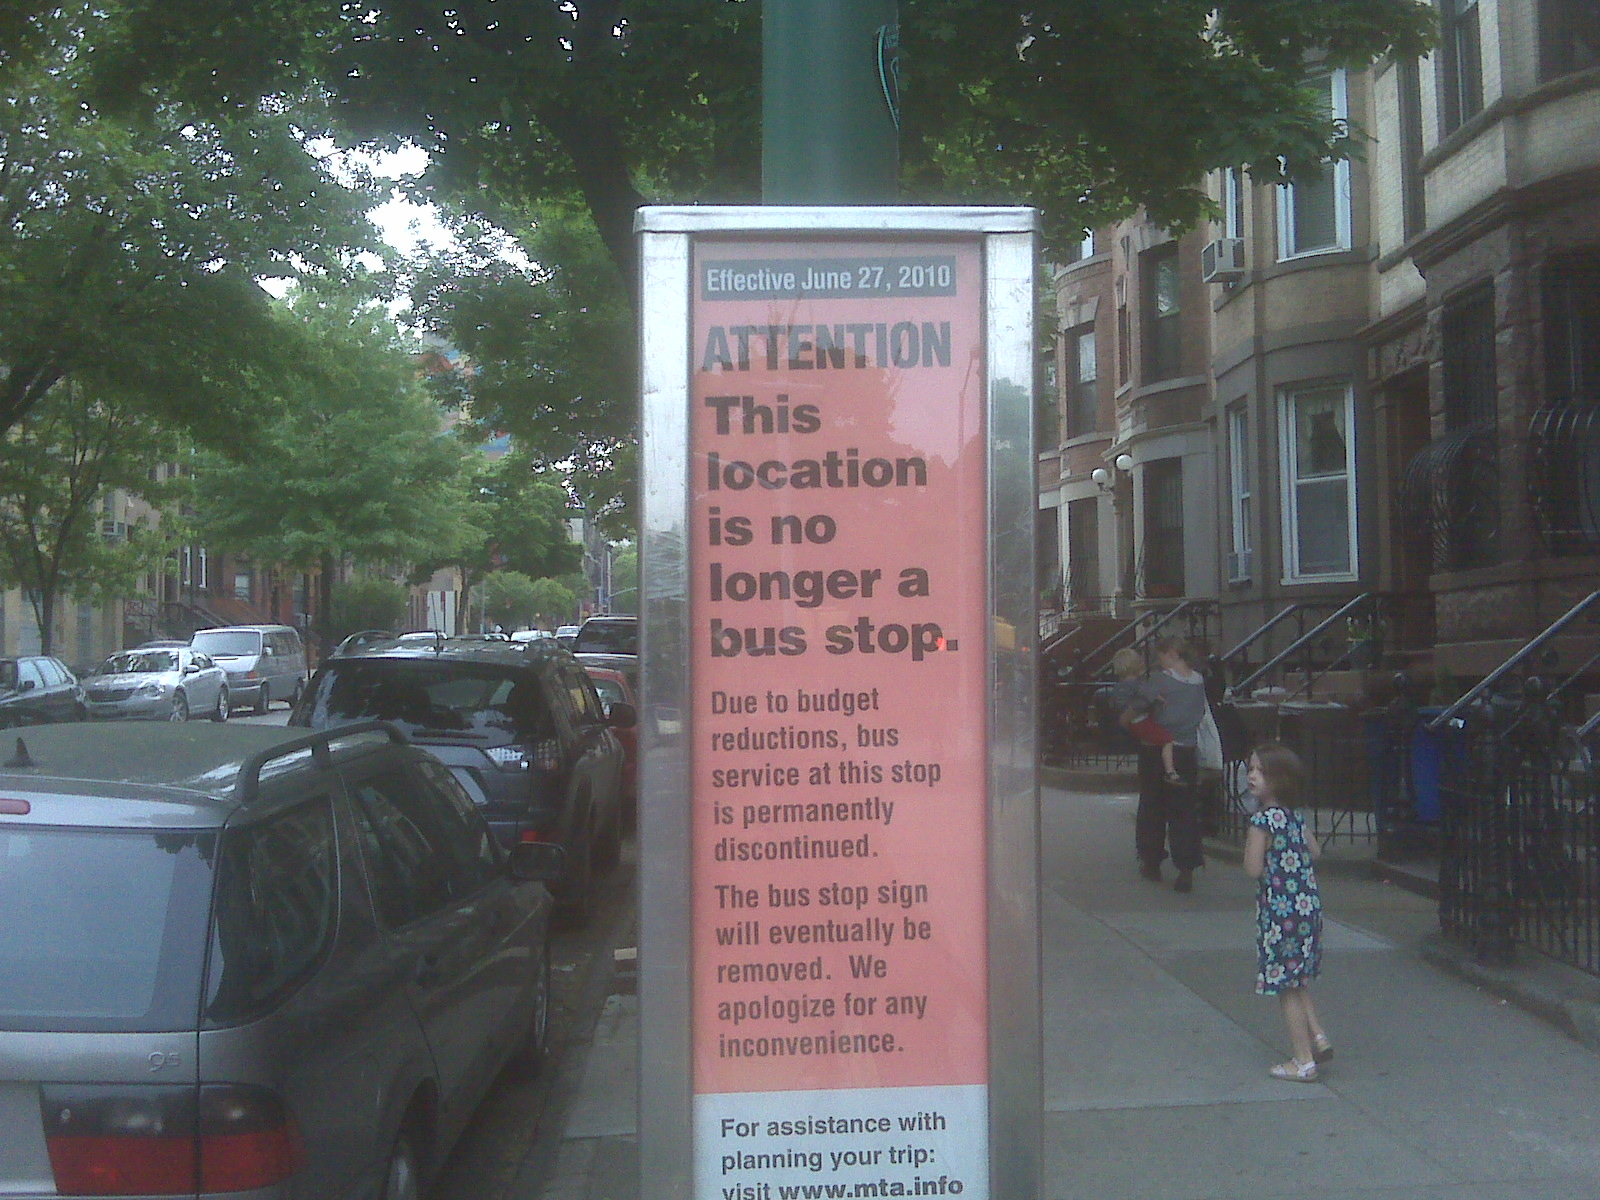 A sign informs riders that 6th Avenue and Union Street in Park Slope, Brooklyn is no longer a bus stop. Photo via transportationnation.org.